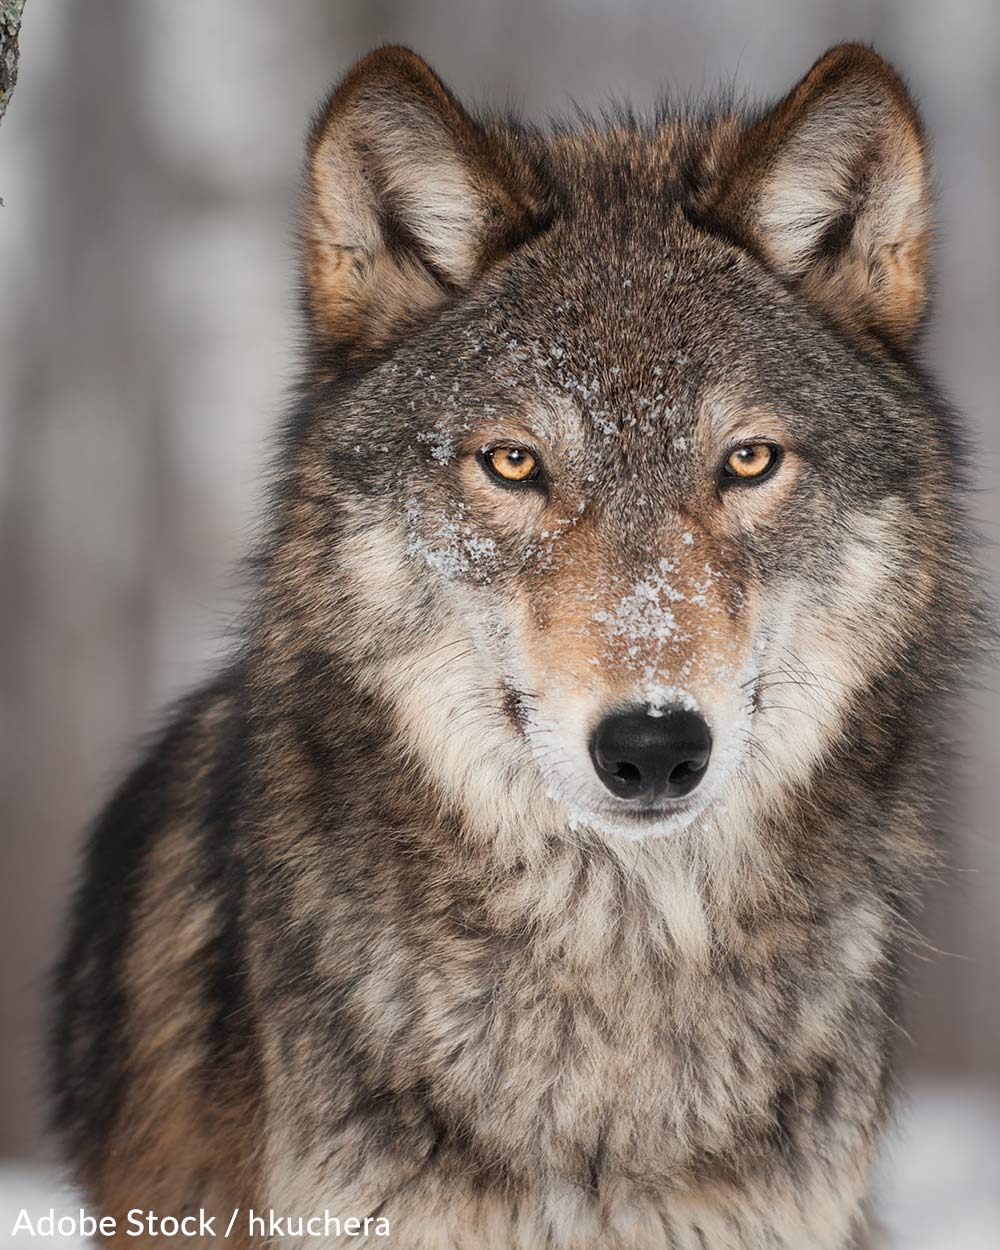 Help us stop the wolf slaughter in Idaho!